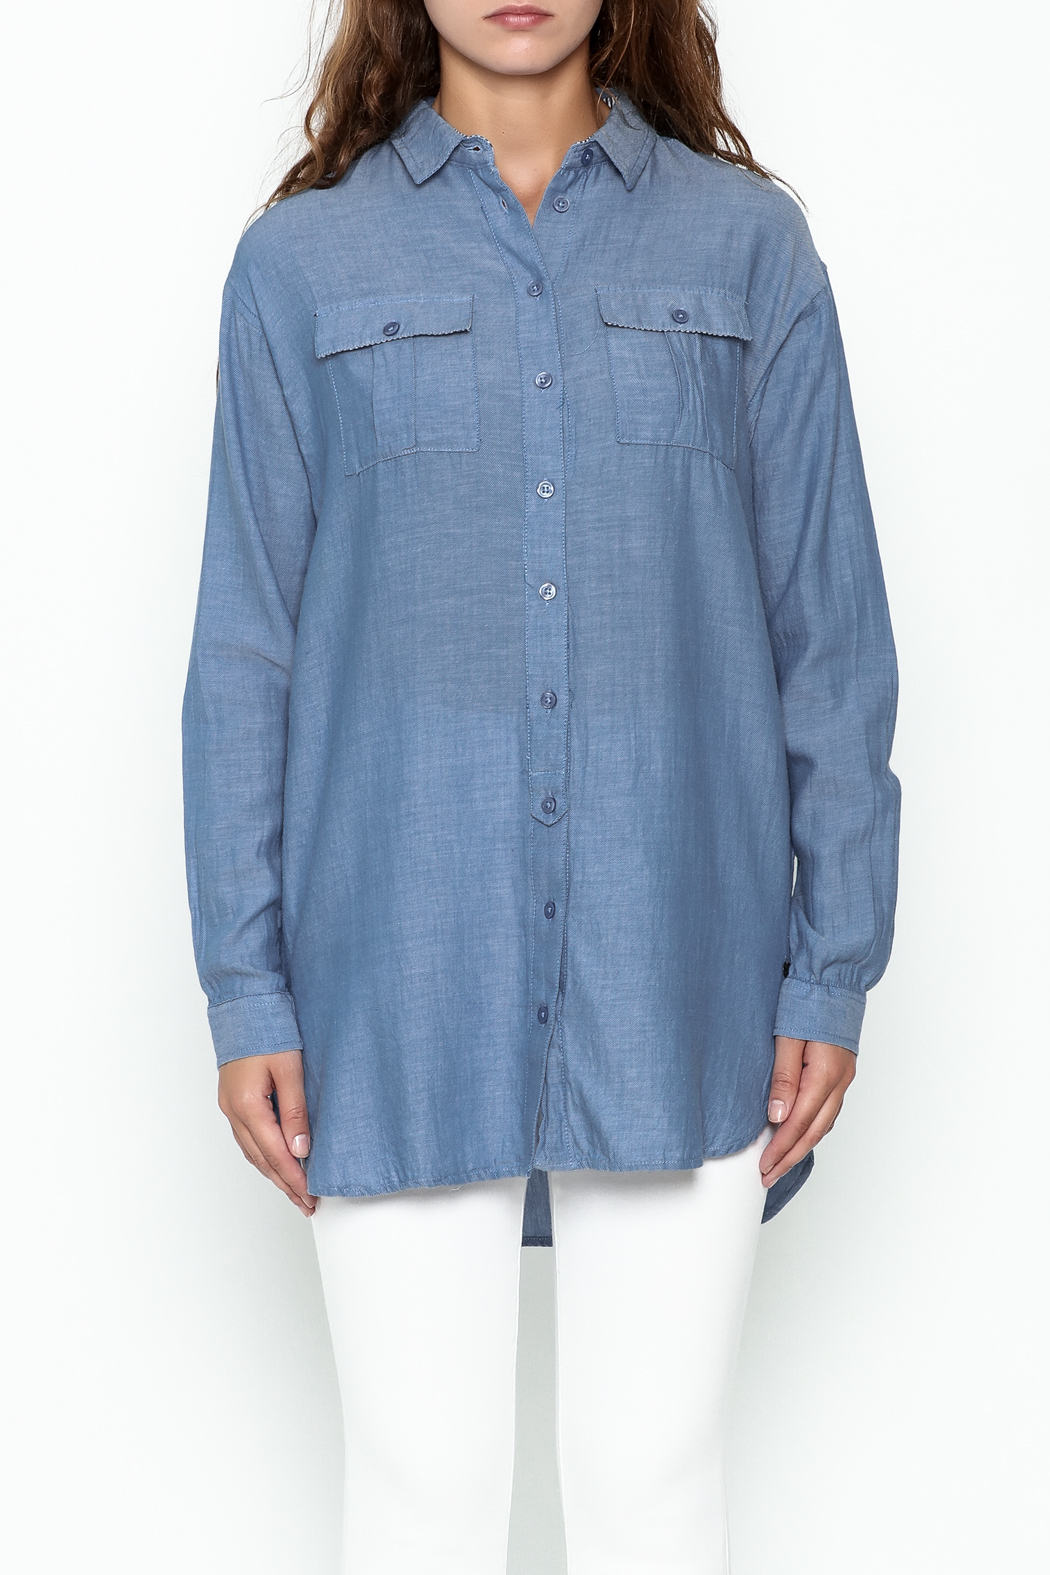 Numph Chambray Button Tunic - Front Full Image